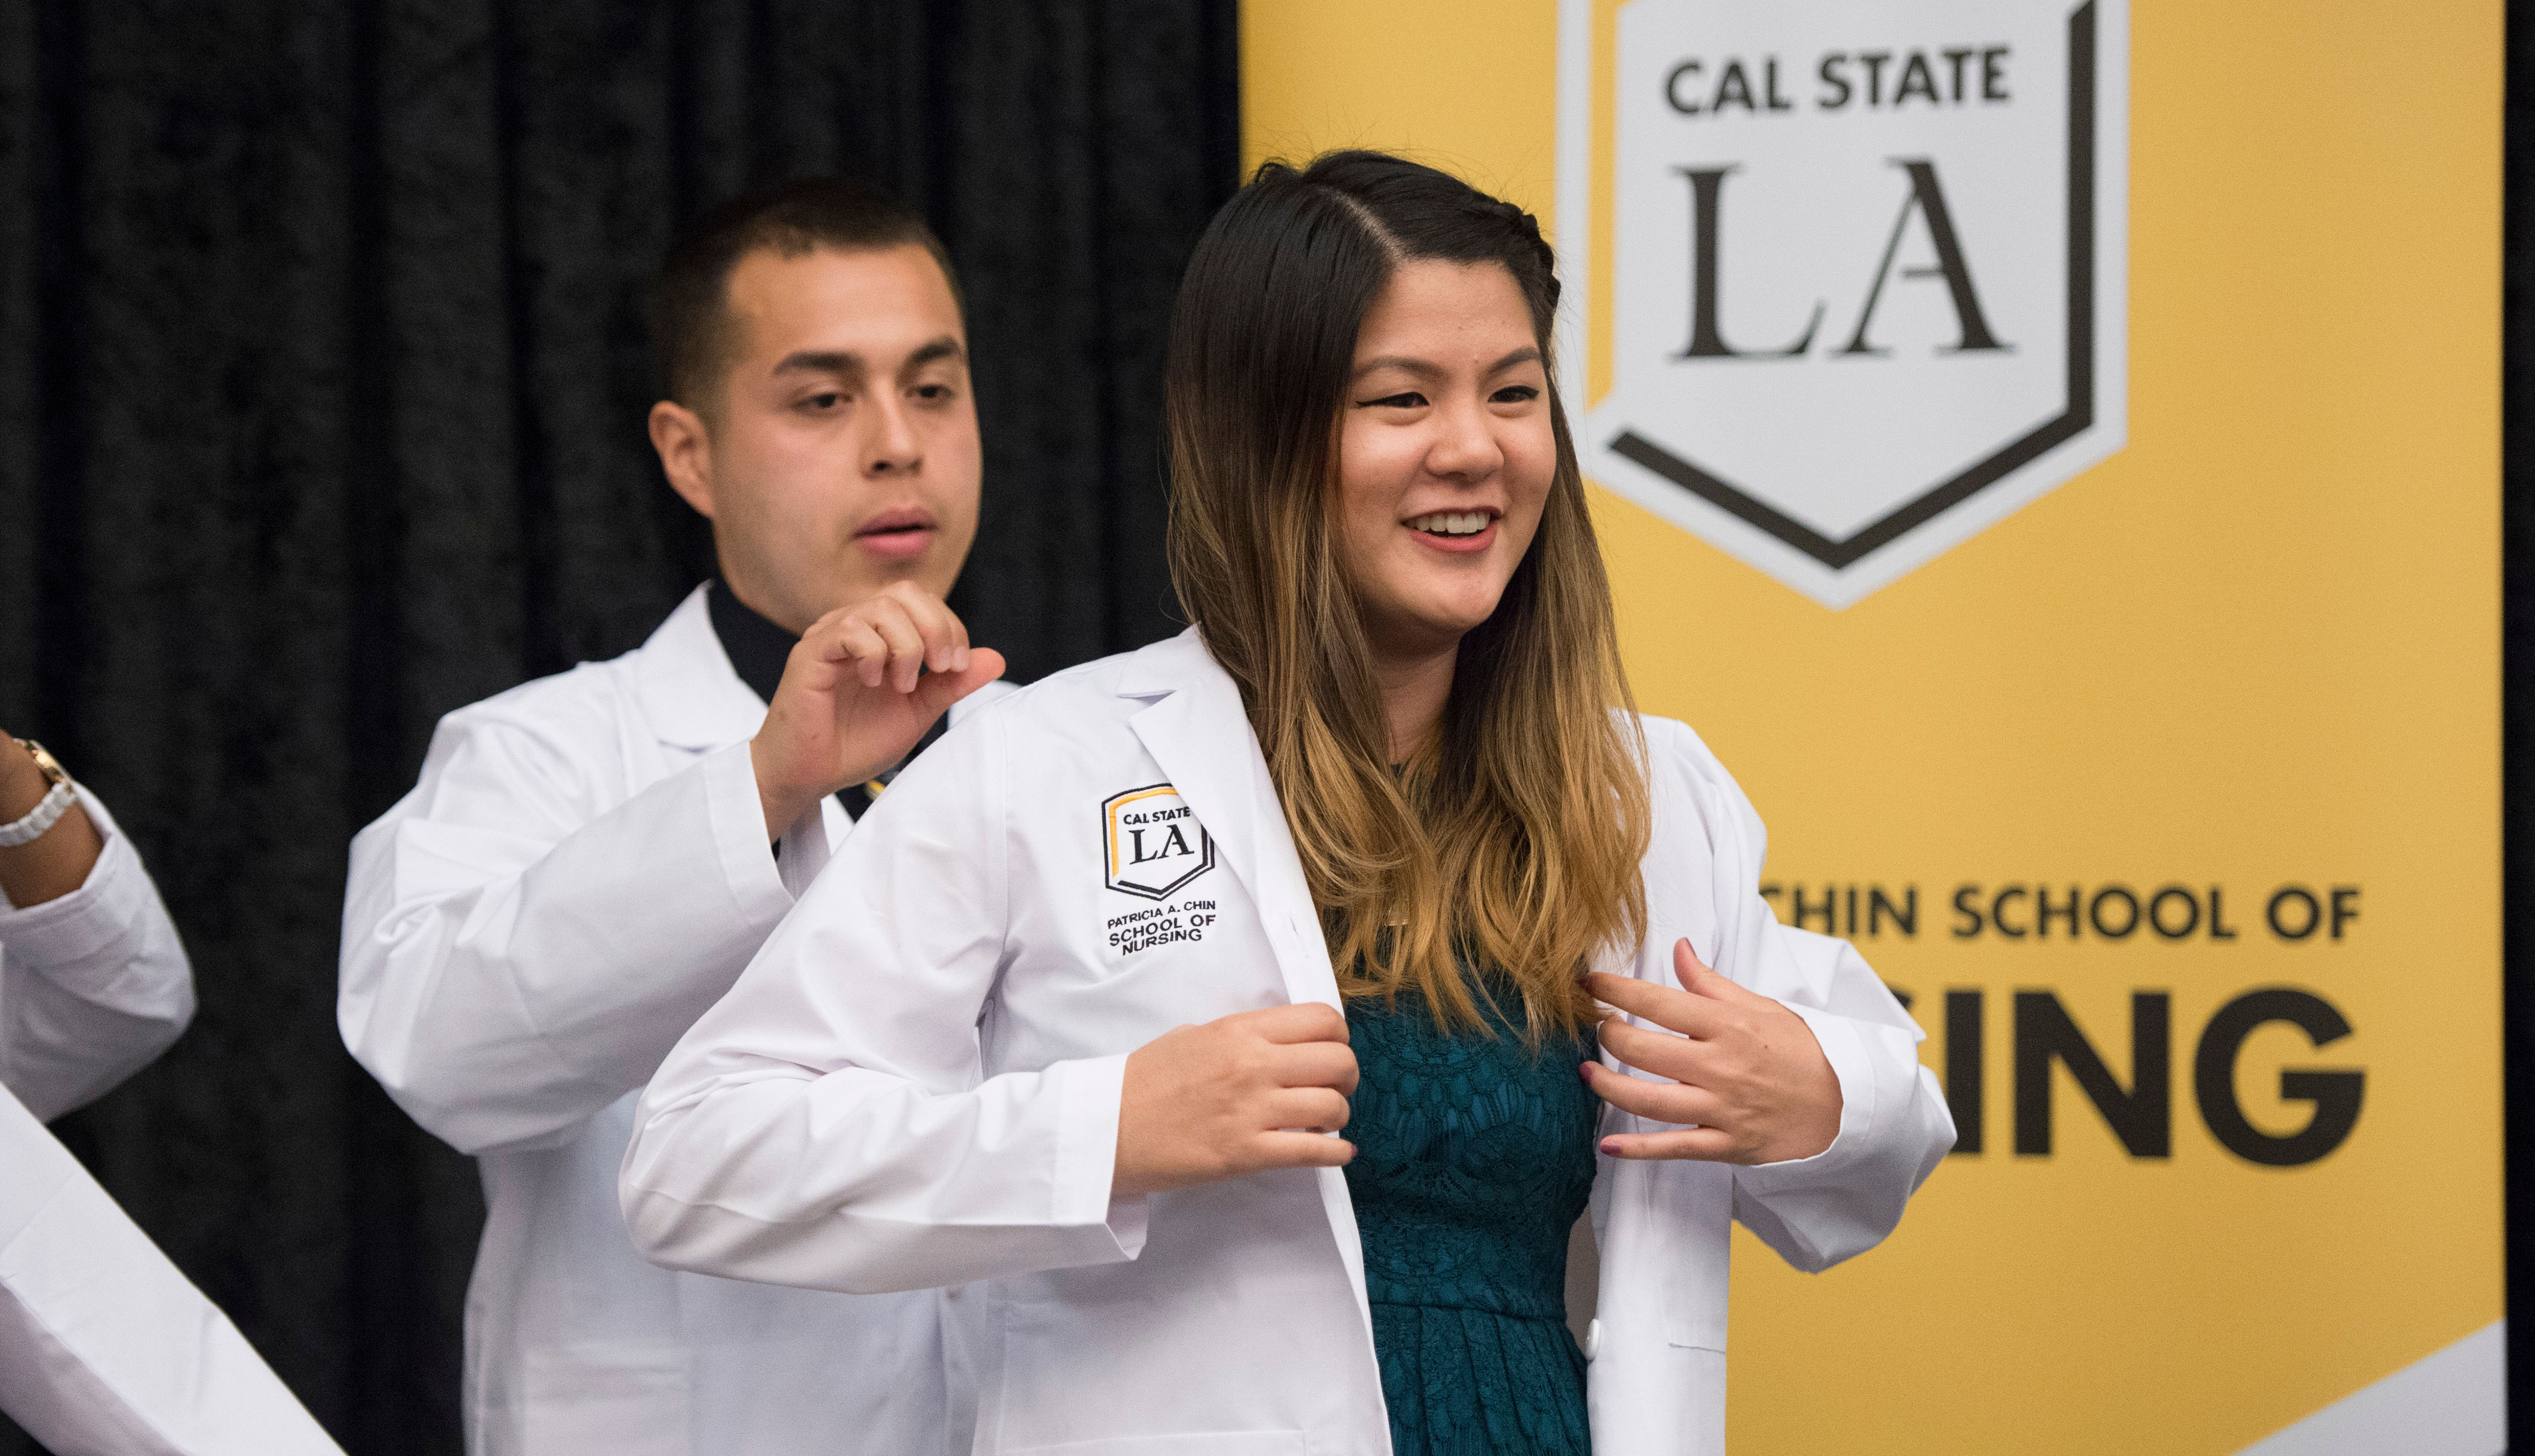 A student put on her white coat on stage.